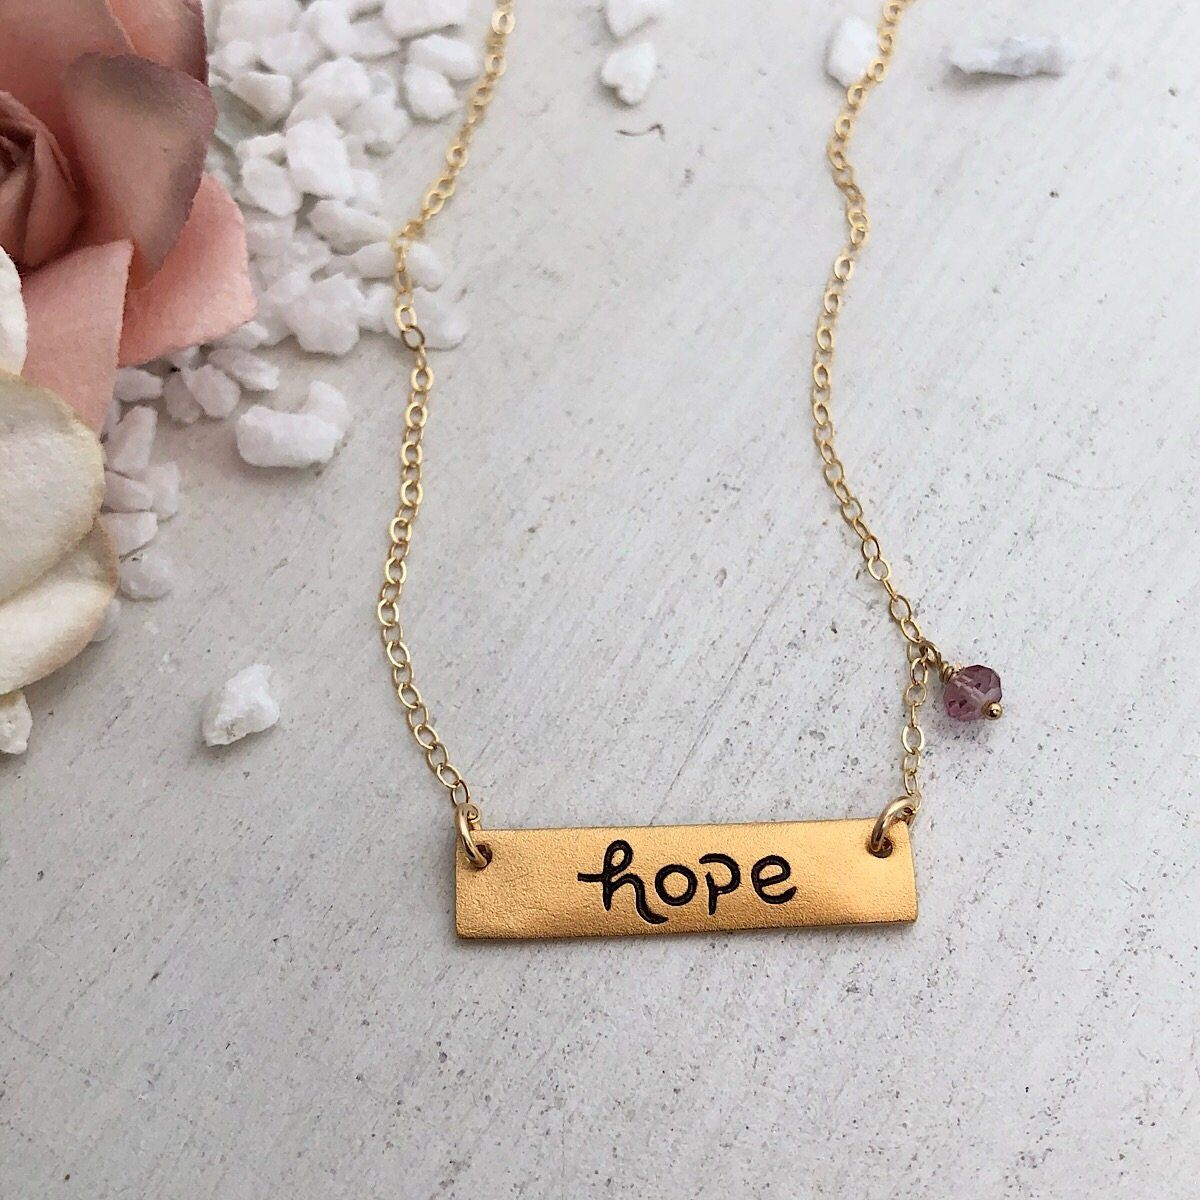 Hope Necklace - IsabelleGraceJewelry